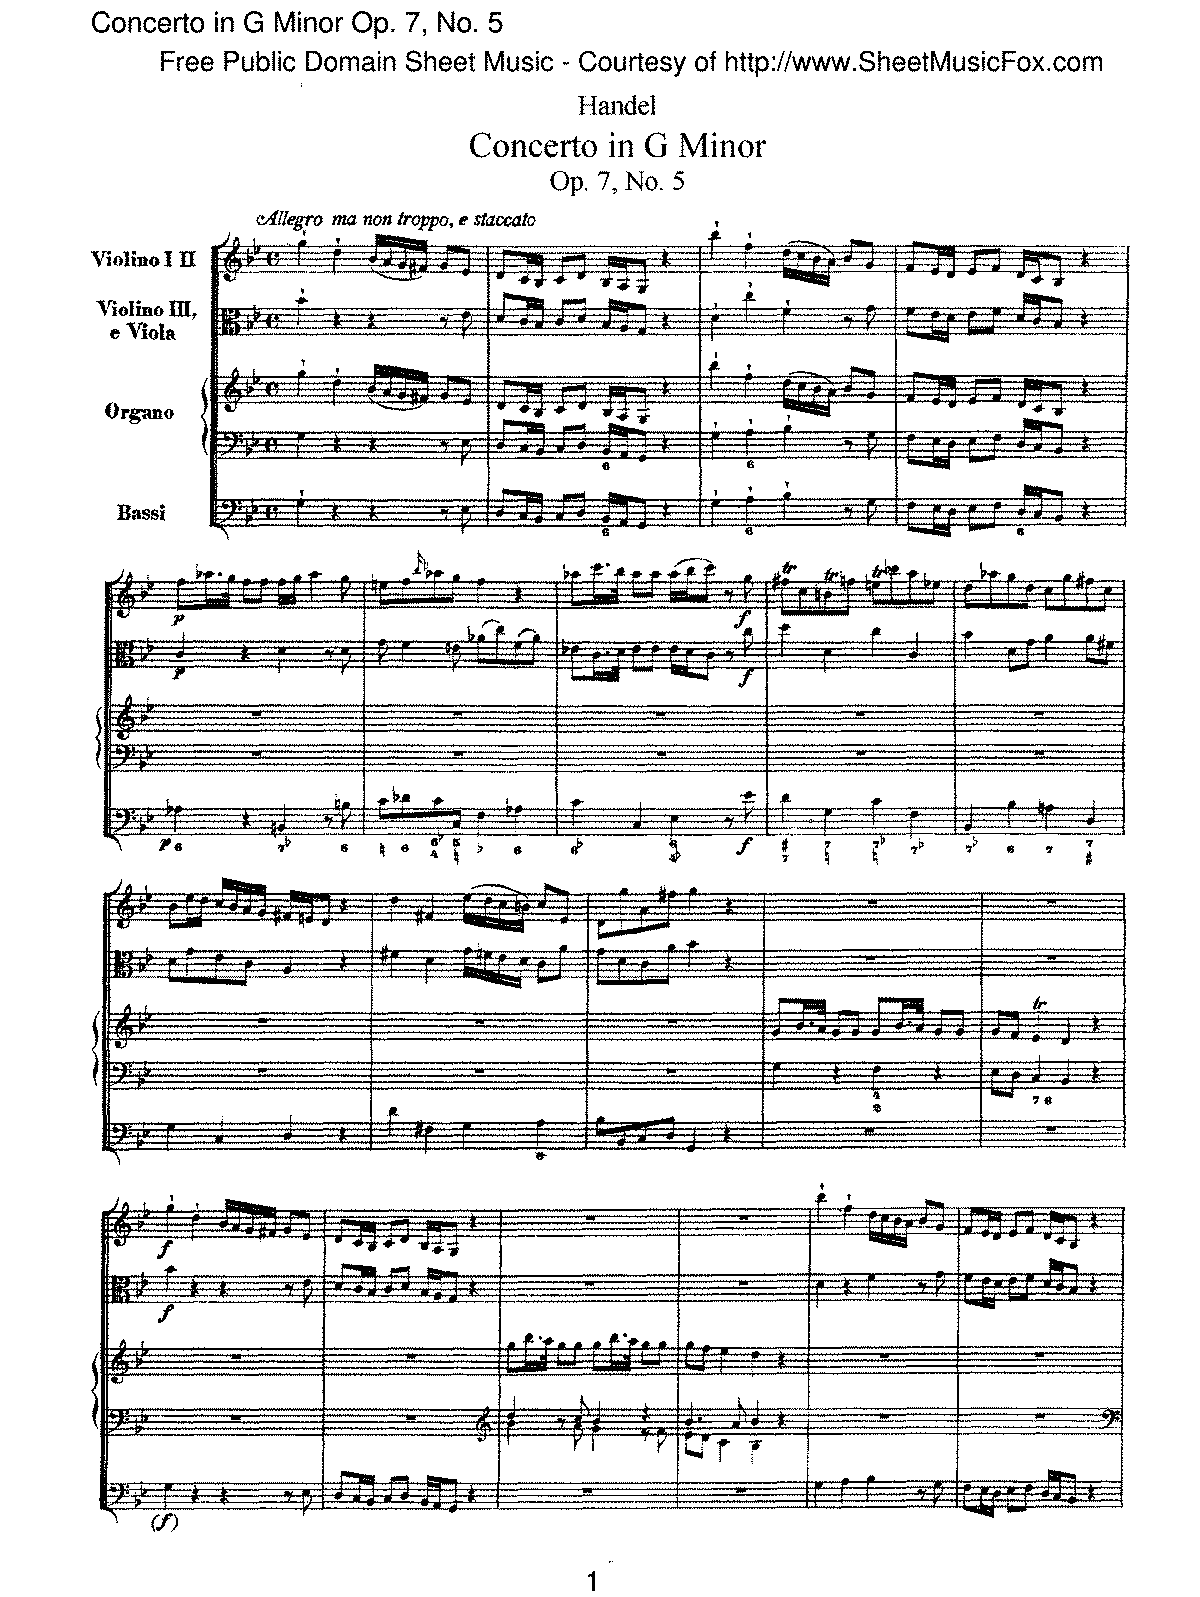 Handel - Concerto in G minor, Op.7 No.5.pdf